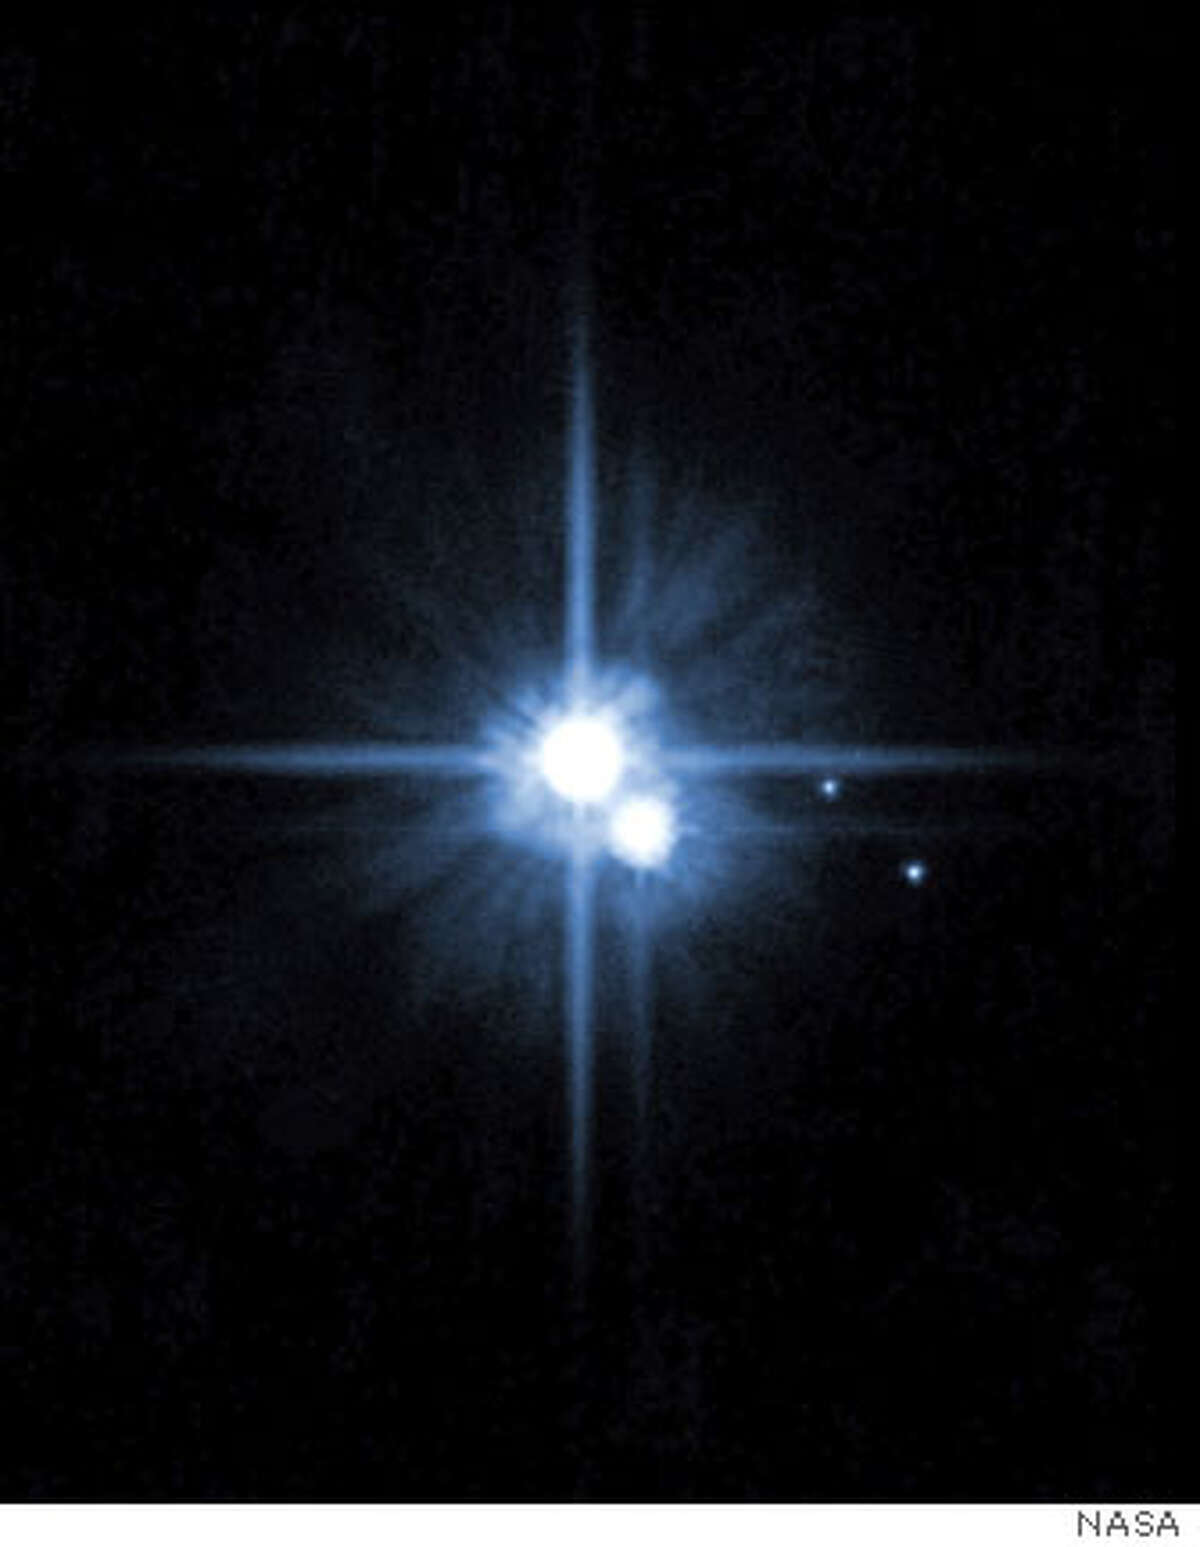 (NYT72) UNDATED -- August 22, 2006 -- Pluto, center, and its three moons in a photograph taken by the Hubble Space Telescope. Under fire from other astronomers and the public, a committee appointed by the International Astronomical Union revised and then revised again a definition proposed last week that would have expanded the number of official planets to 12, locking in Pluto as well as the newly discovered Xena in the outer solar system, as well as the asteroid Ceres and Pluto�s moon Charon. (NASA/The New York Times)